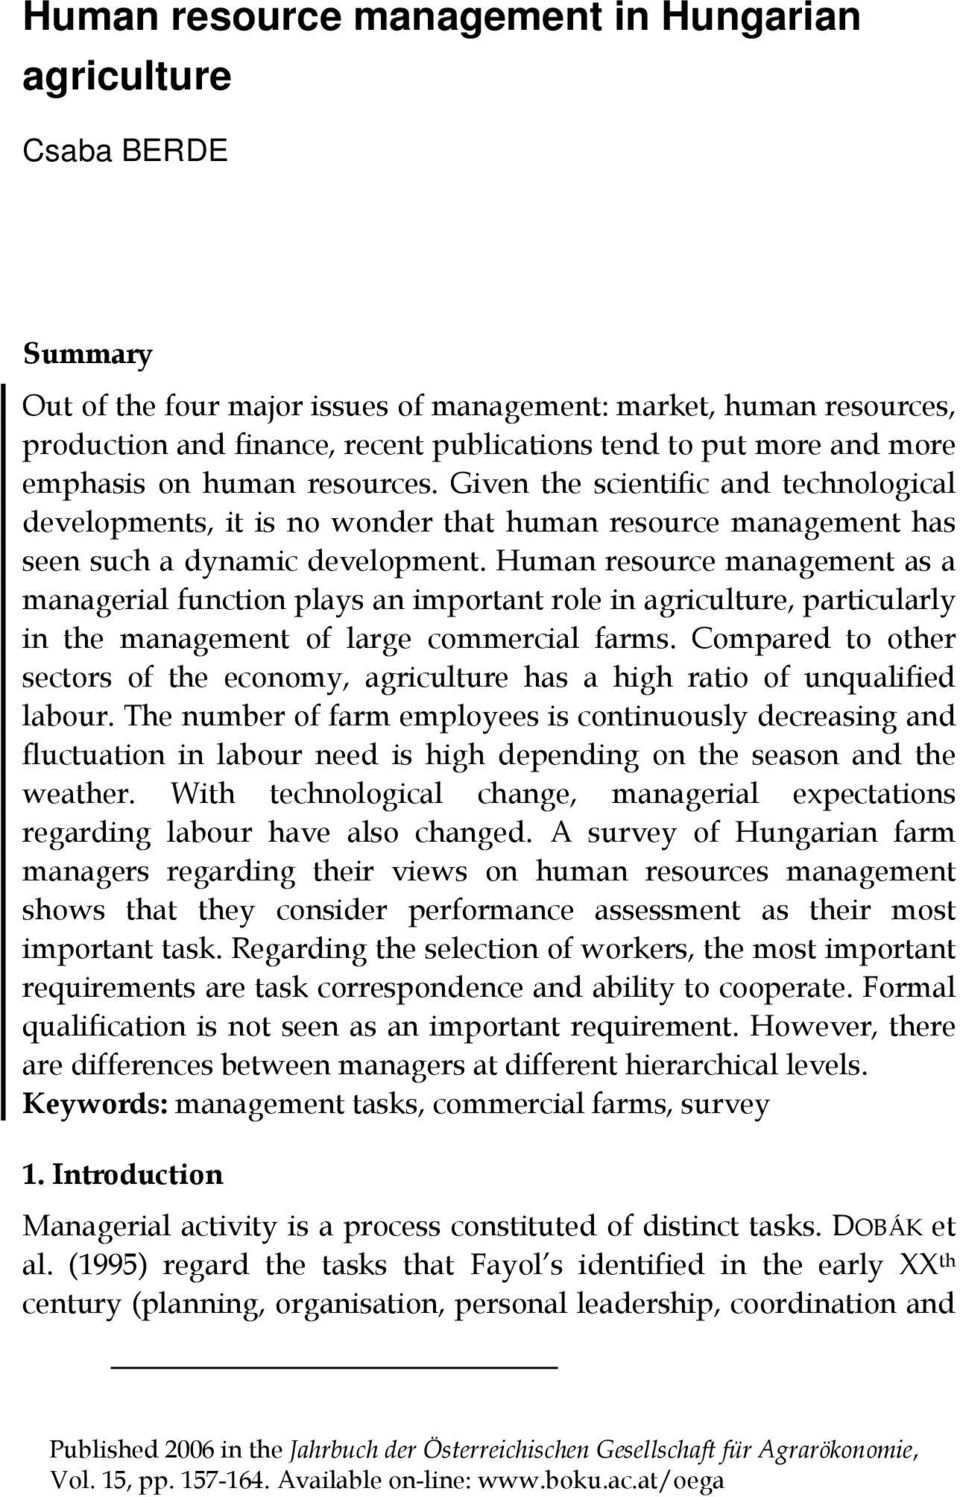 Human resource management as a managerial function plays an important role in agriculture, particularly in the management of large commercial farms.